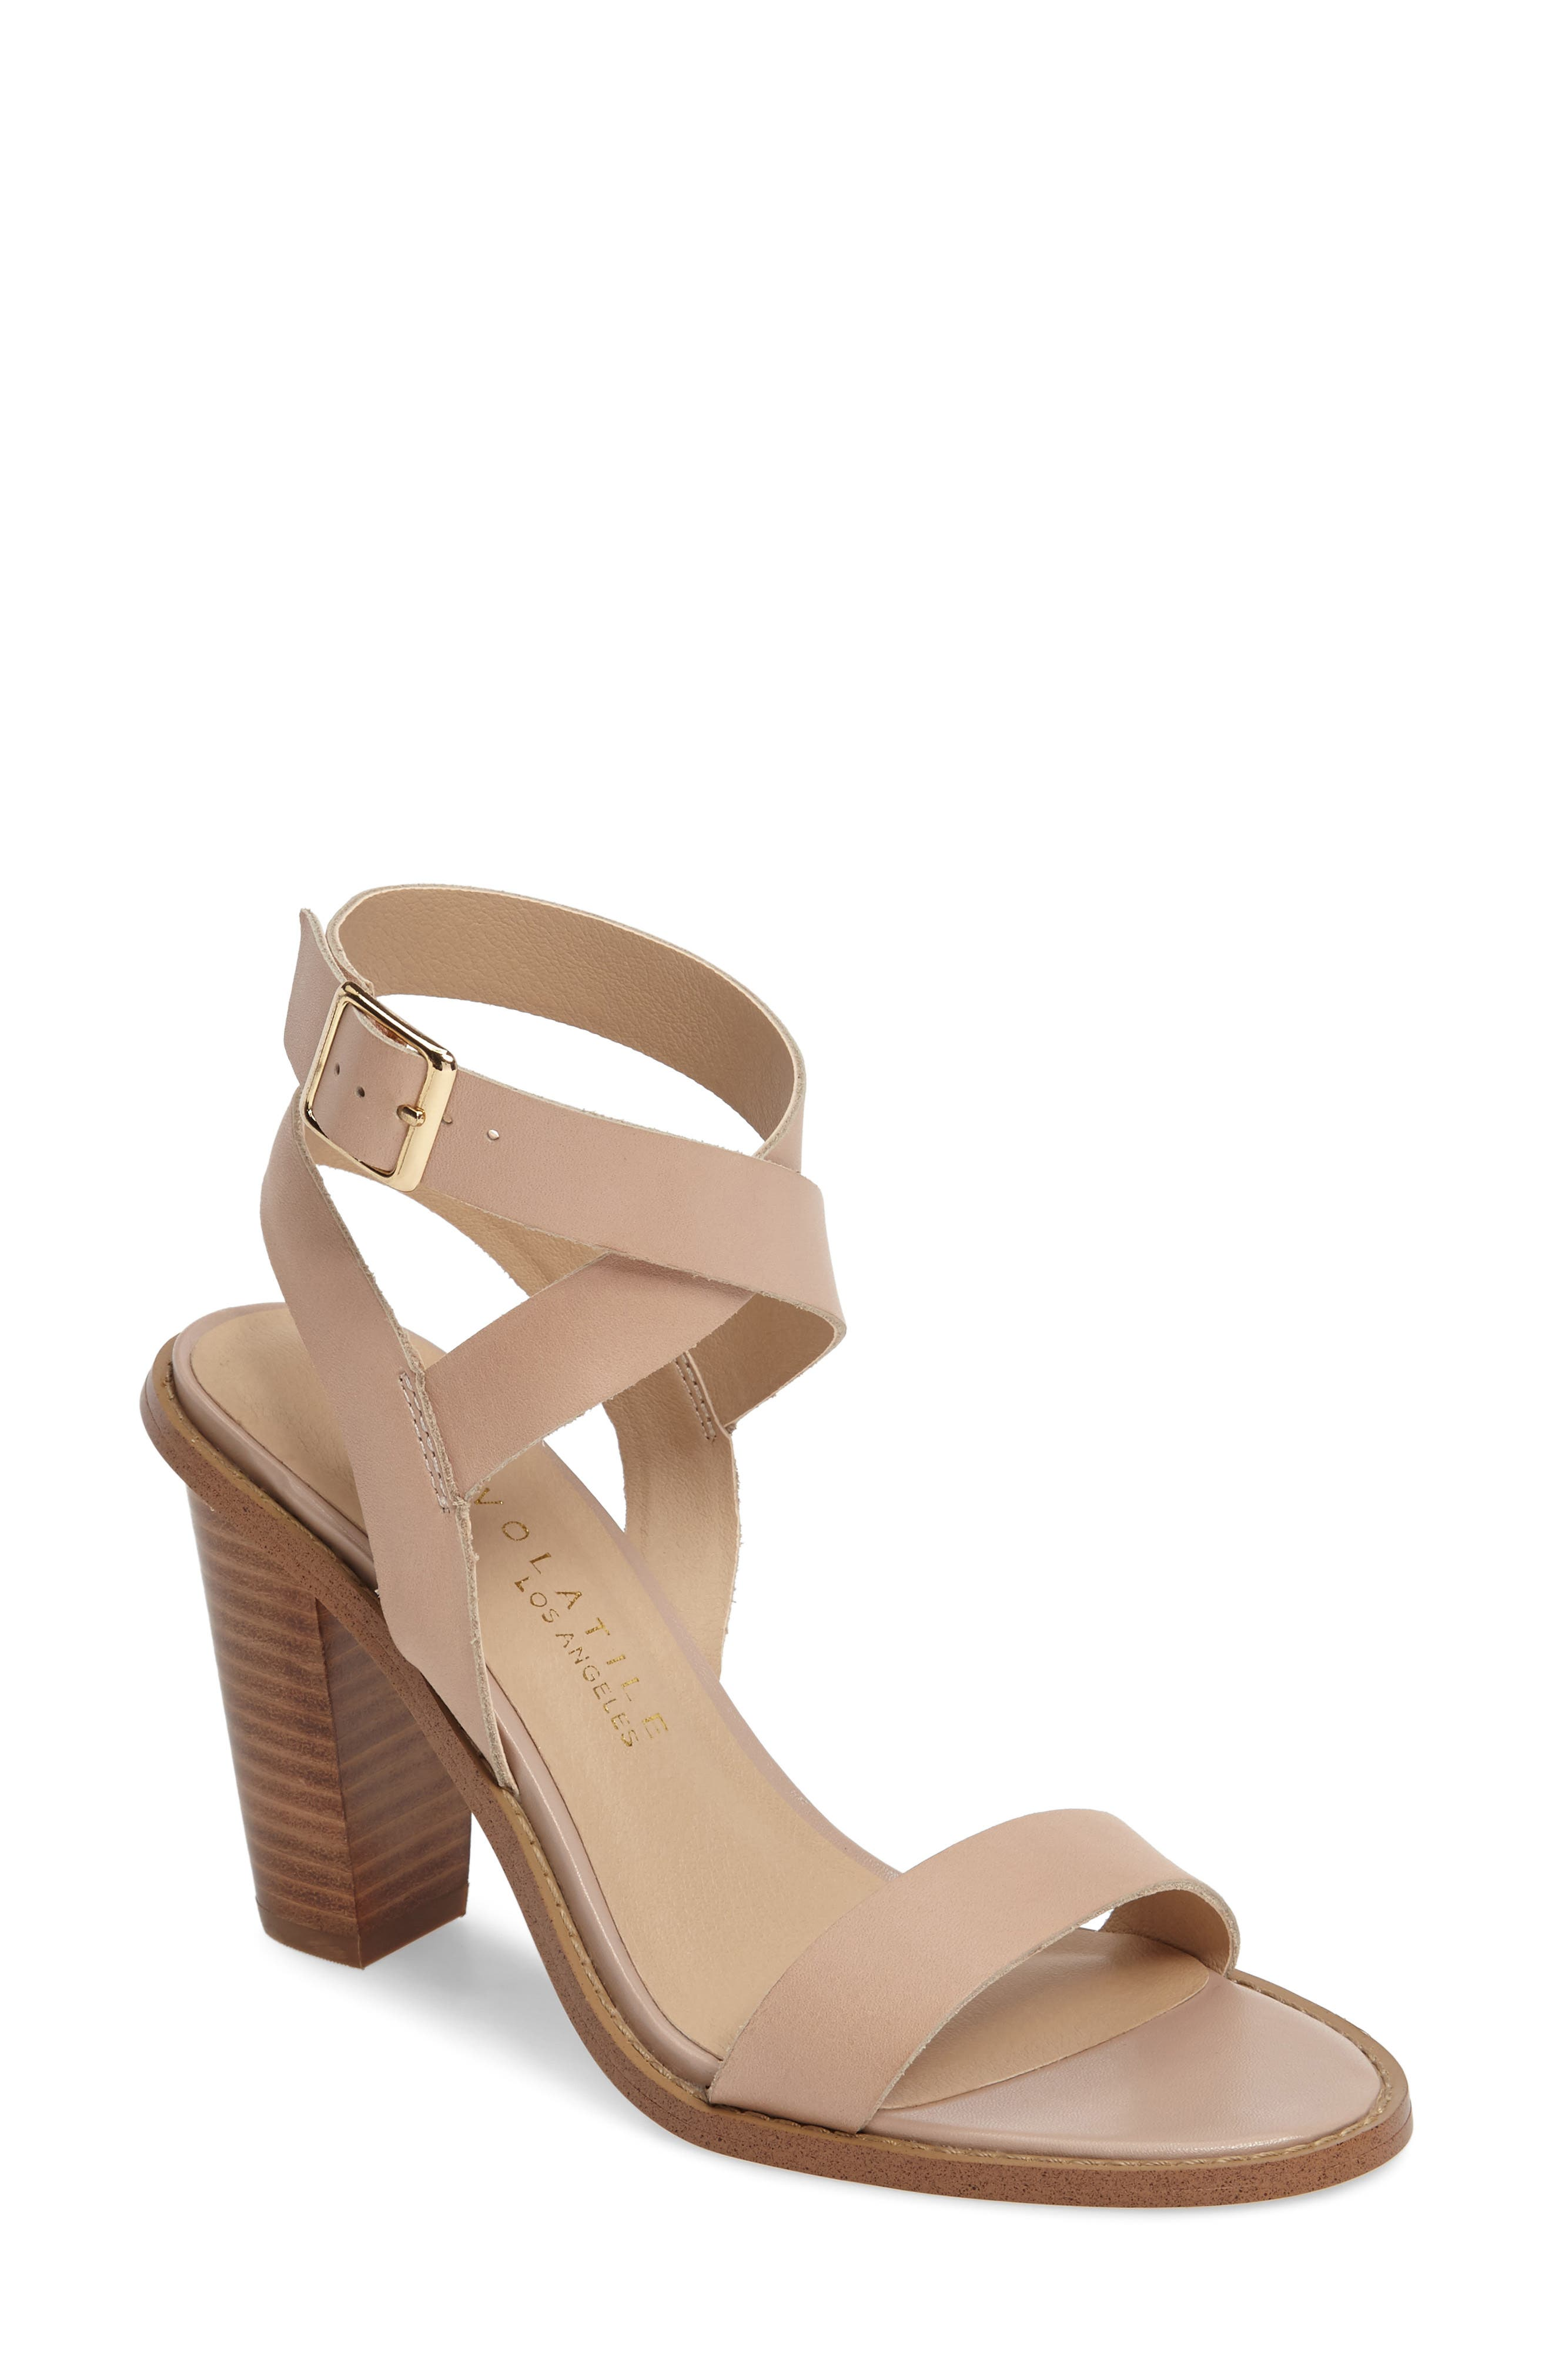 Main Image - Very Volatile Poshy Ankle Wrap Sandal (Women)